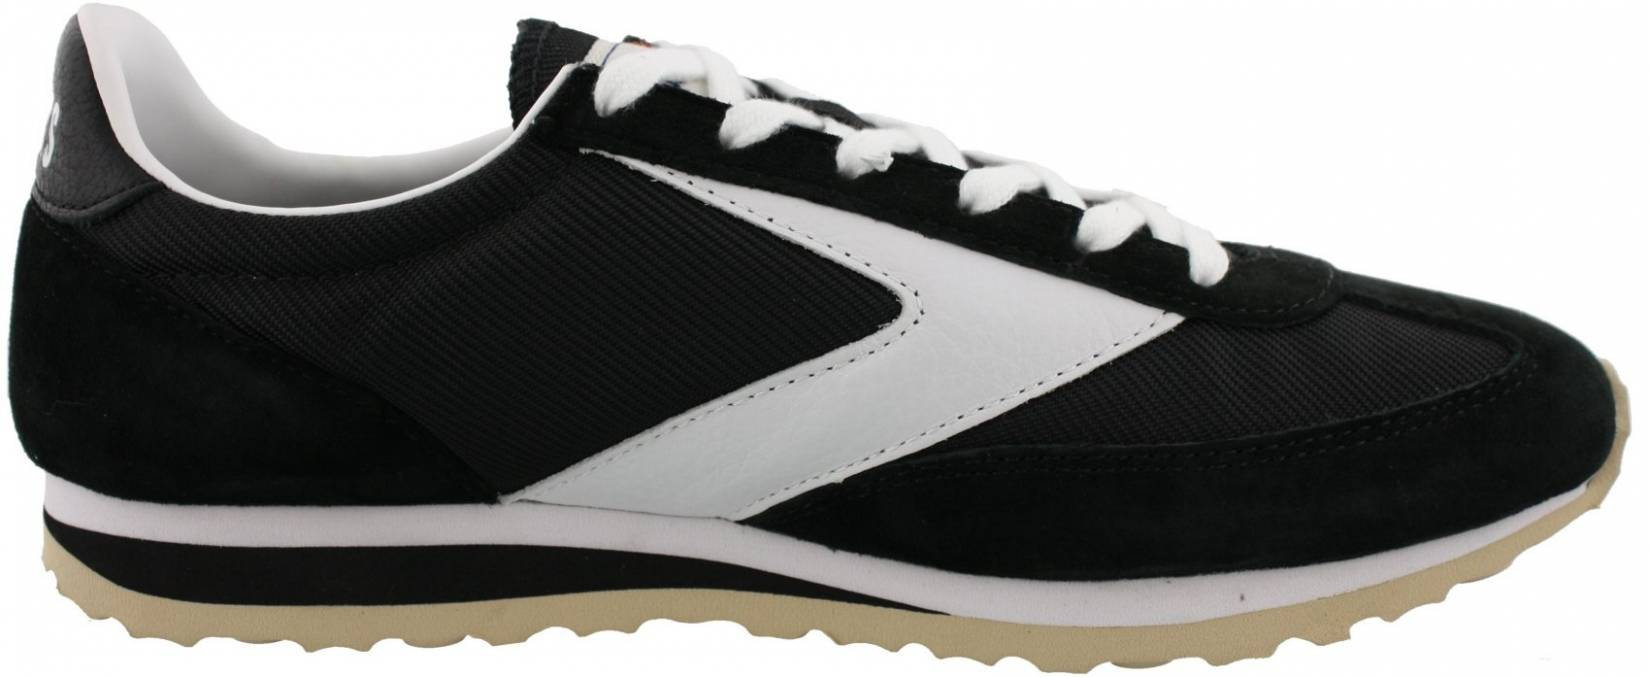 Save 9% on Brooks Sneakers (5 Models in